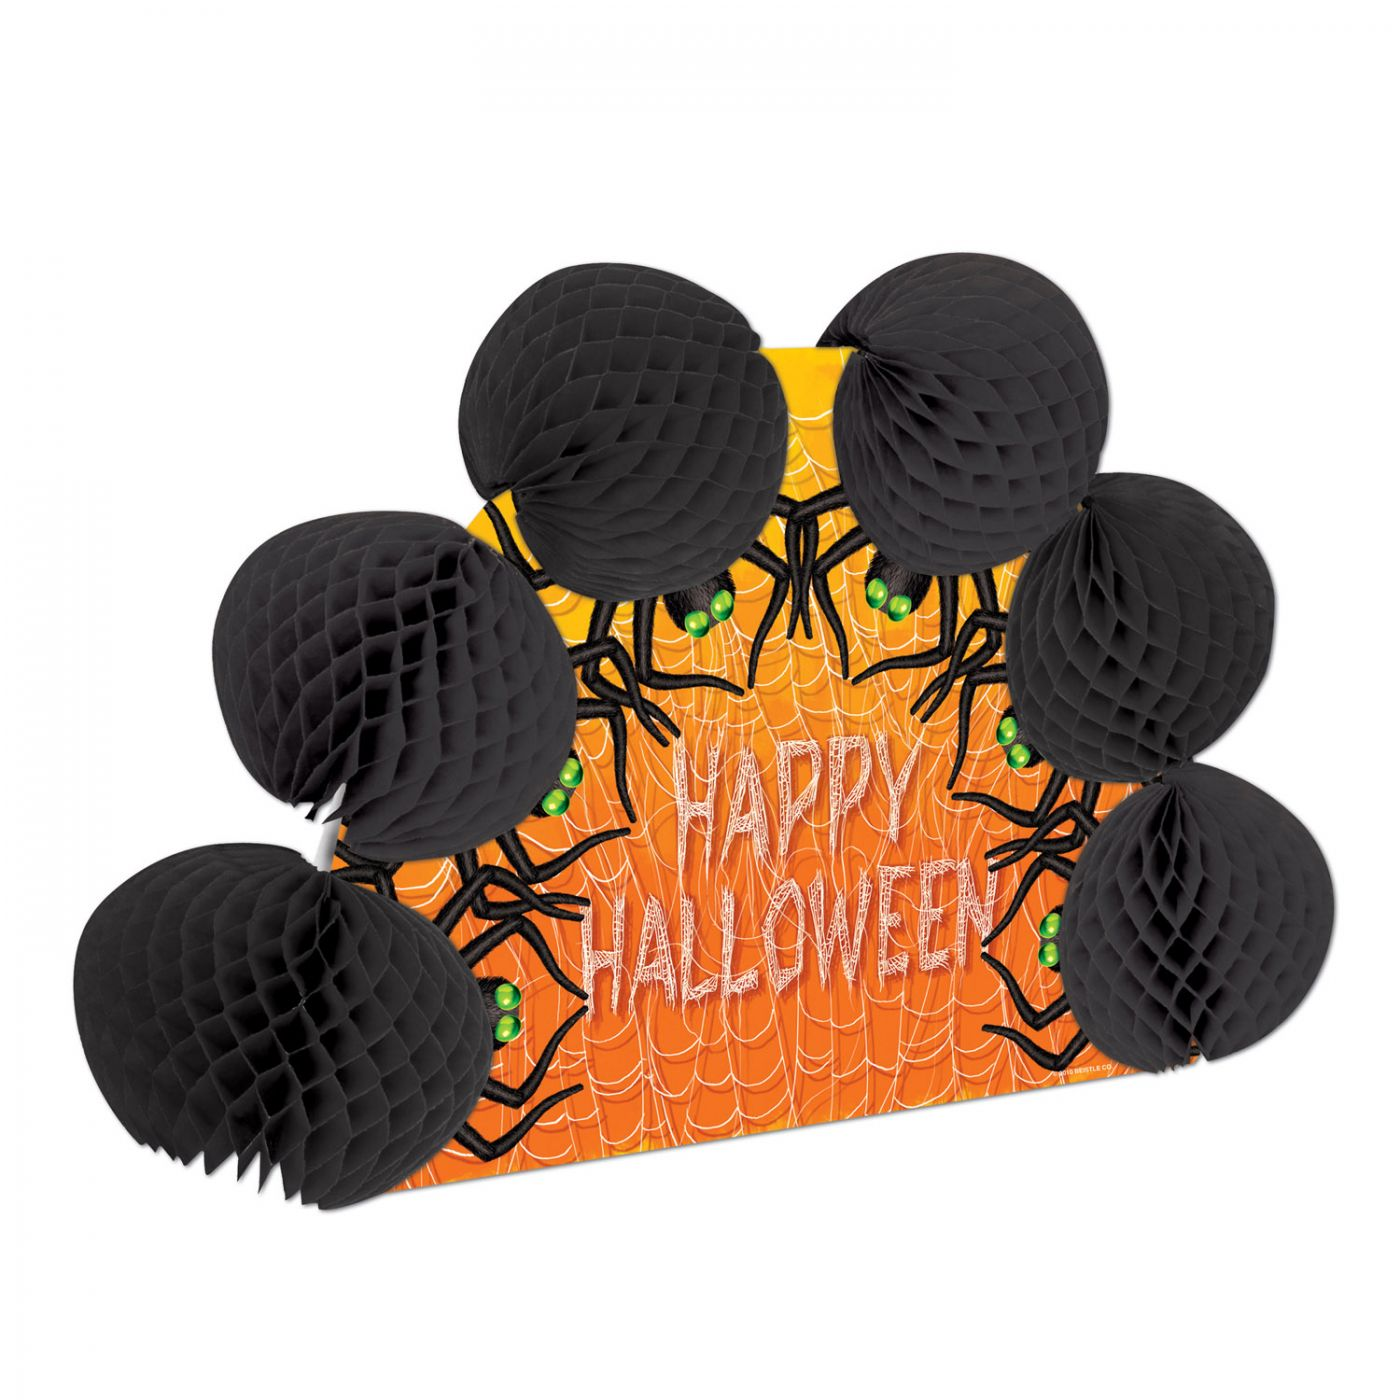 Halloween Spiders Pop-Over Centerpiece image